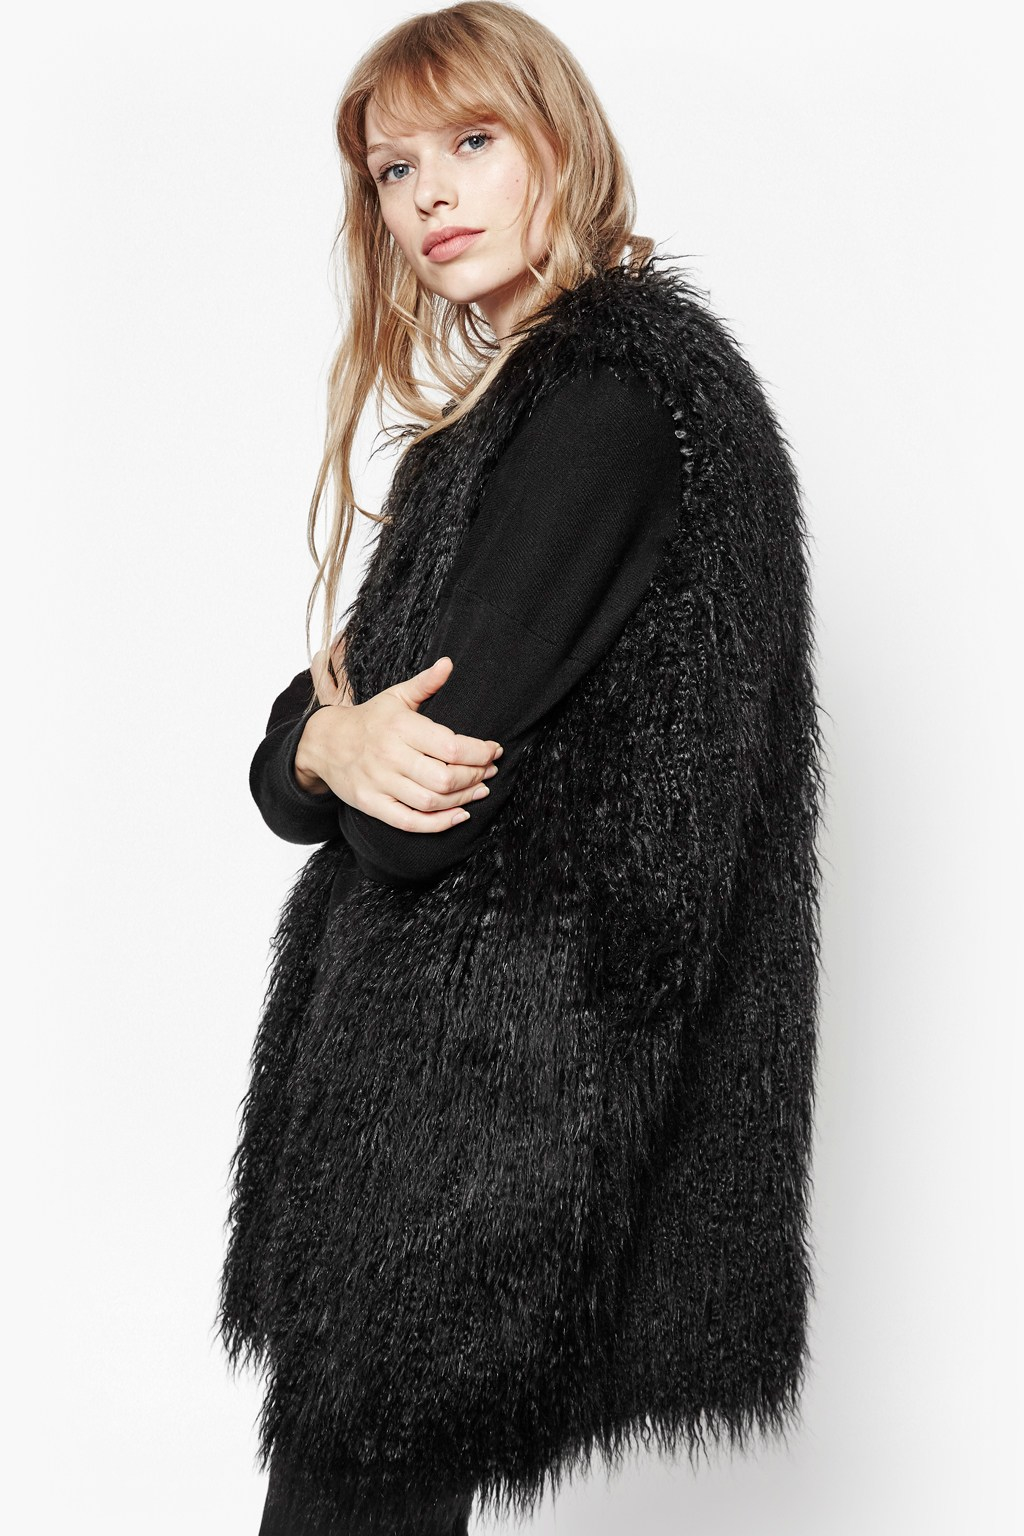 Today's modern update on the traditional fur jacket is the fun fur gilet. Simple, yet stunning, these fur gilets will wow your friends. Simple, yet stunning, these fur gilets will wow your friends. Fur gilets are being worn with jeans, leggings, skirts and dress pants/5(19).